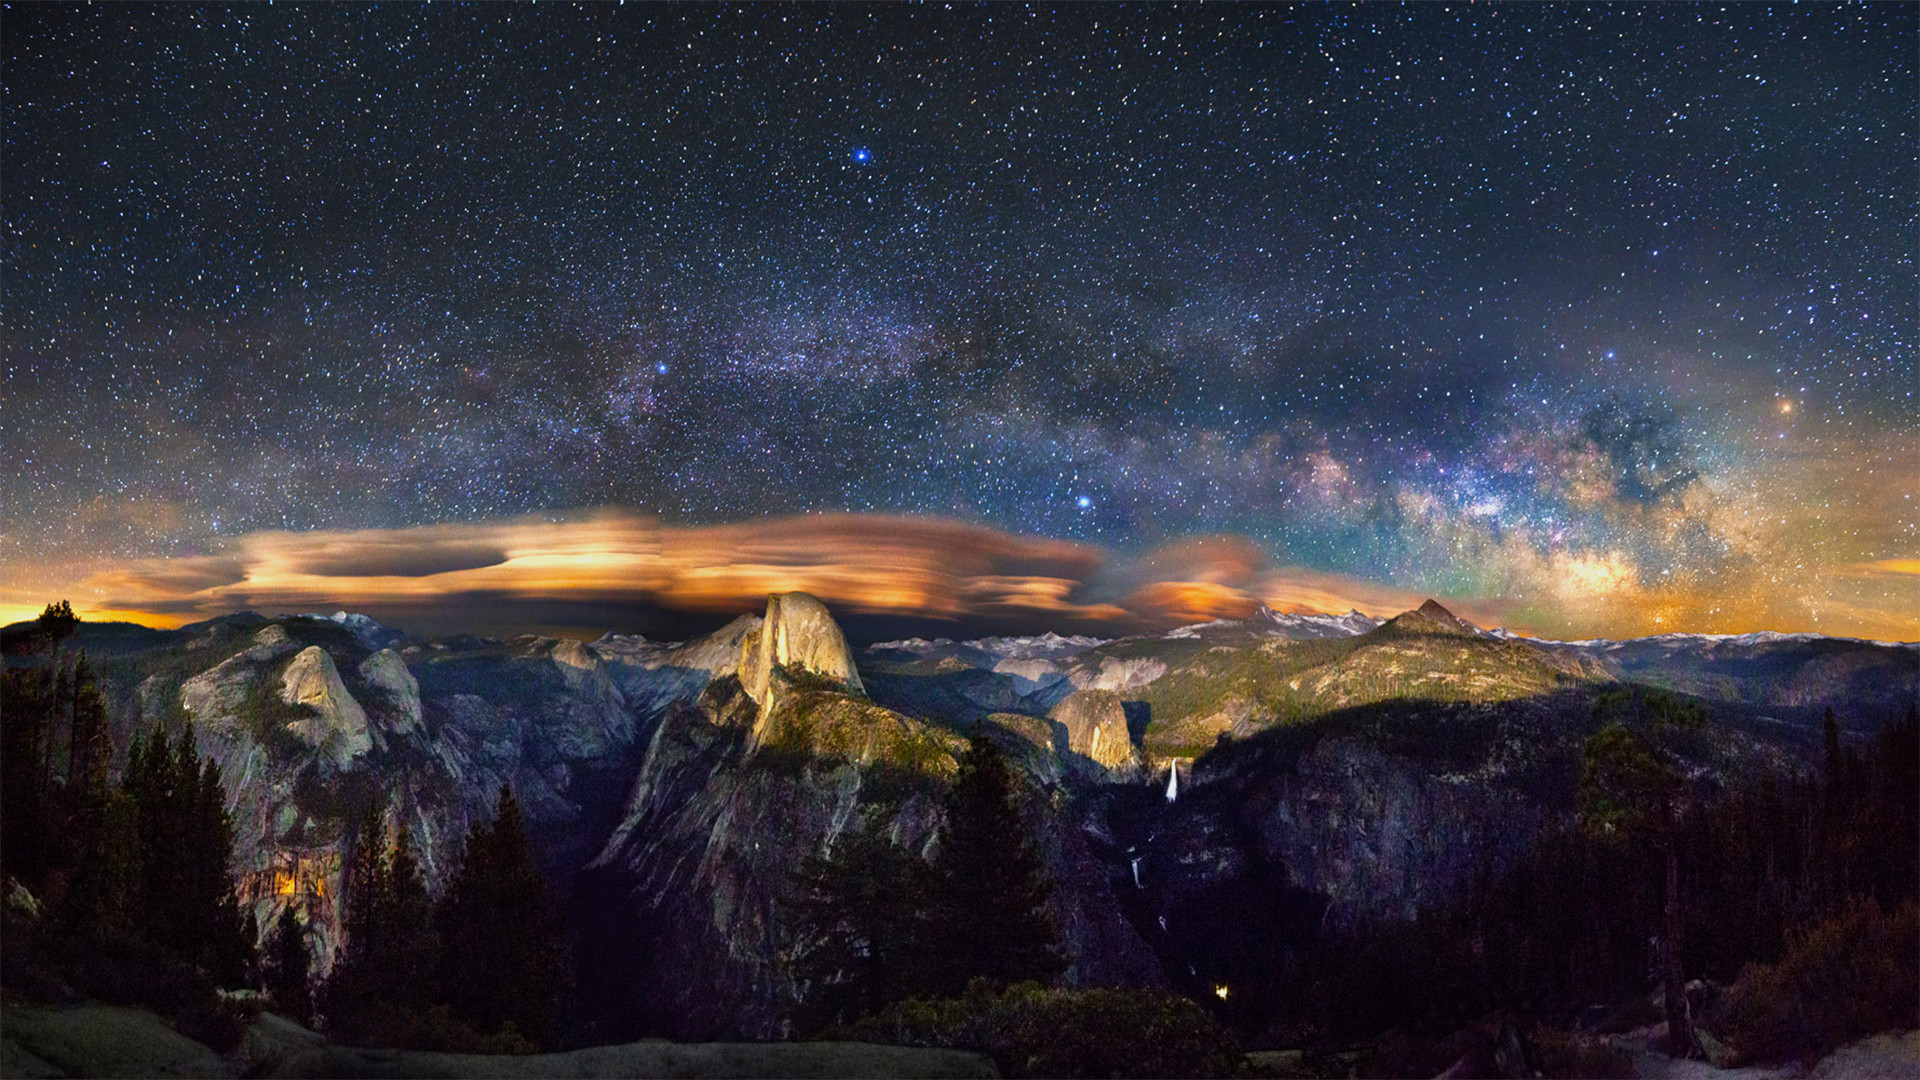 Milky Way over Yosemite (1920×1080) (xpost from /r/spaceporn) …